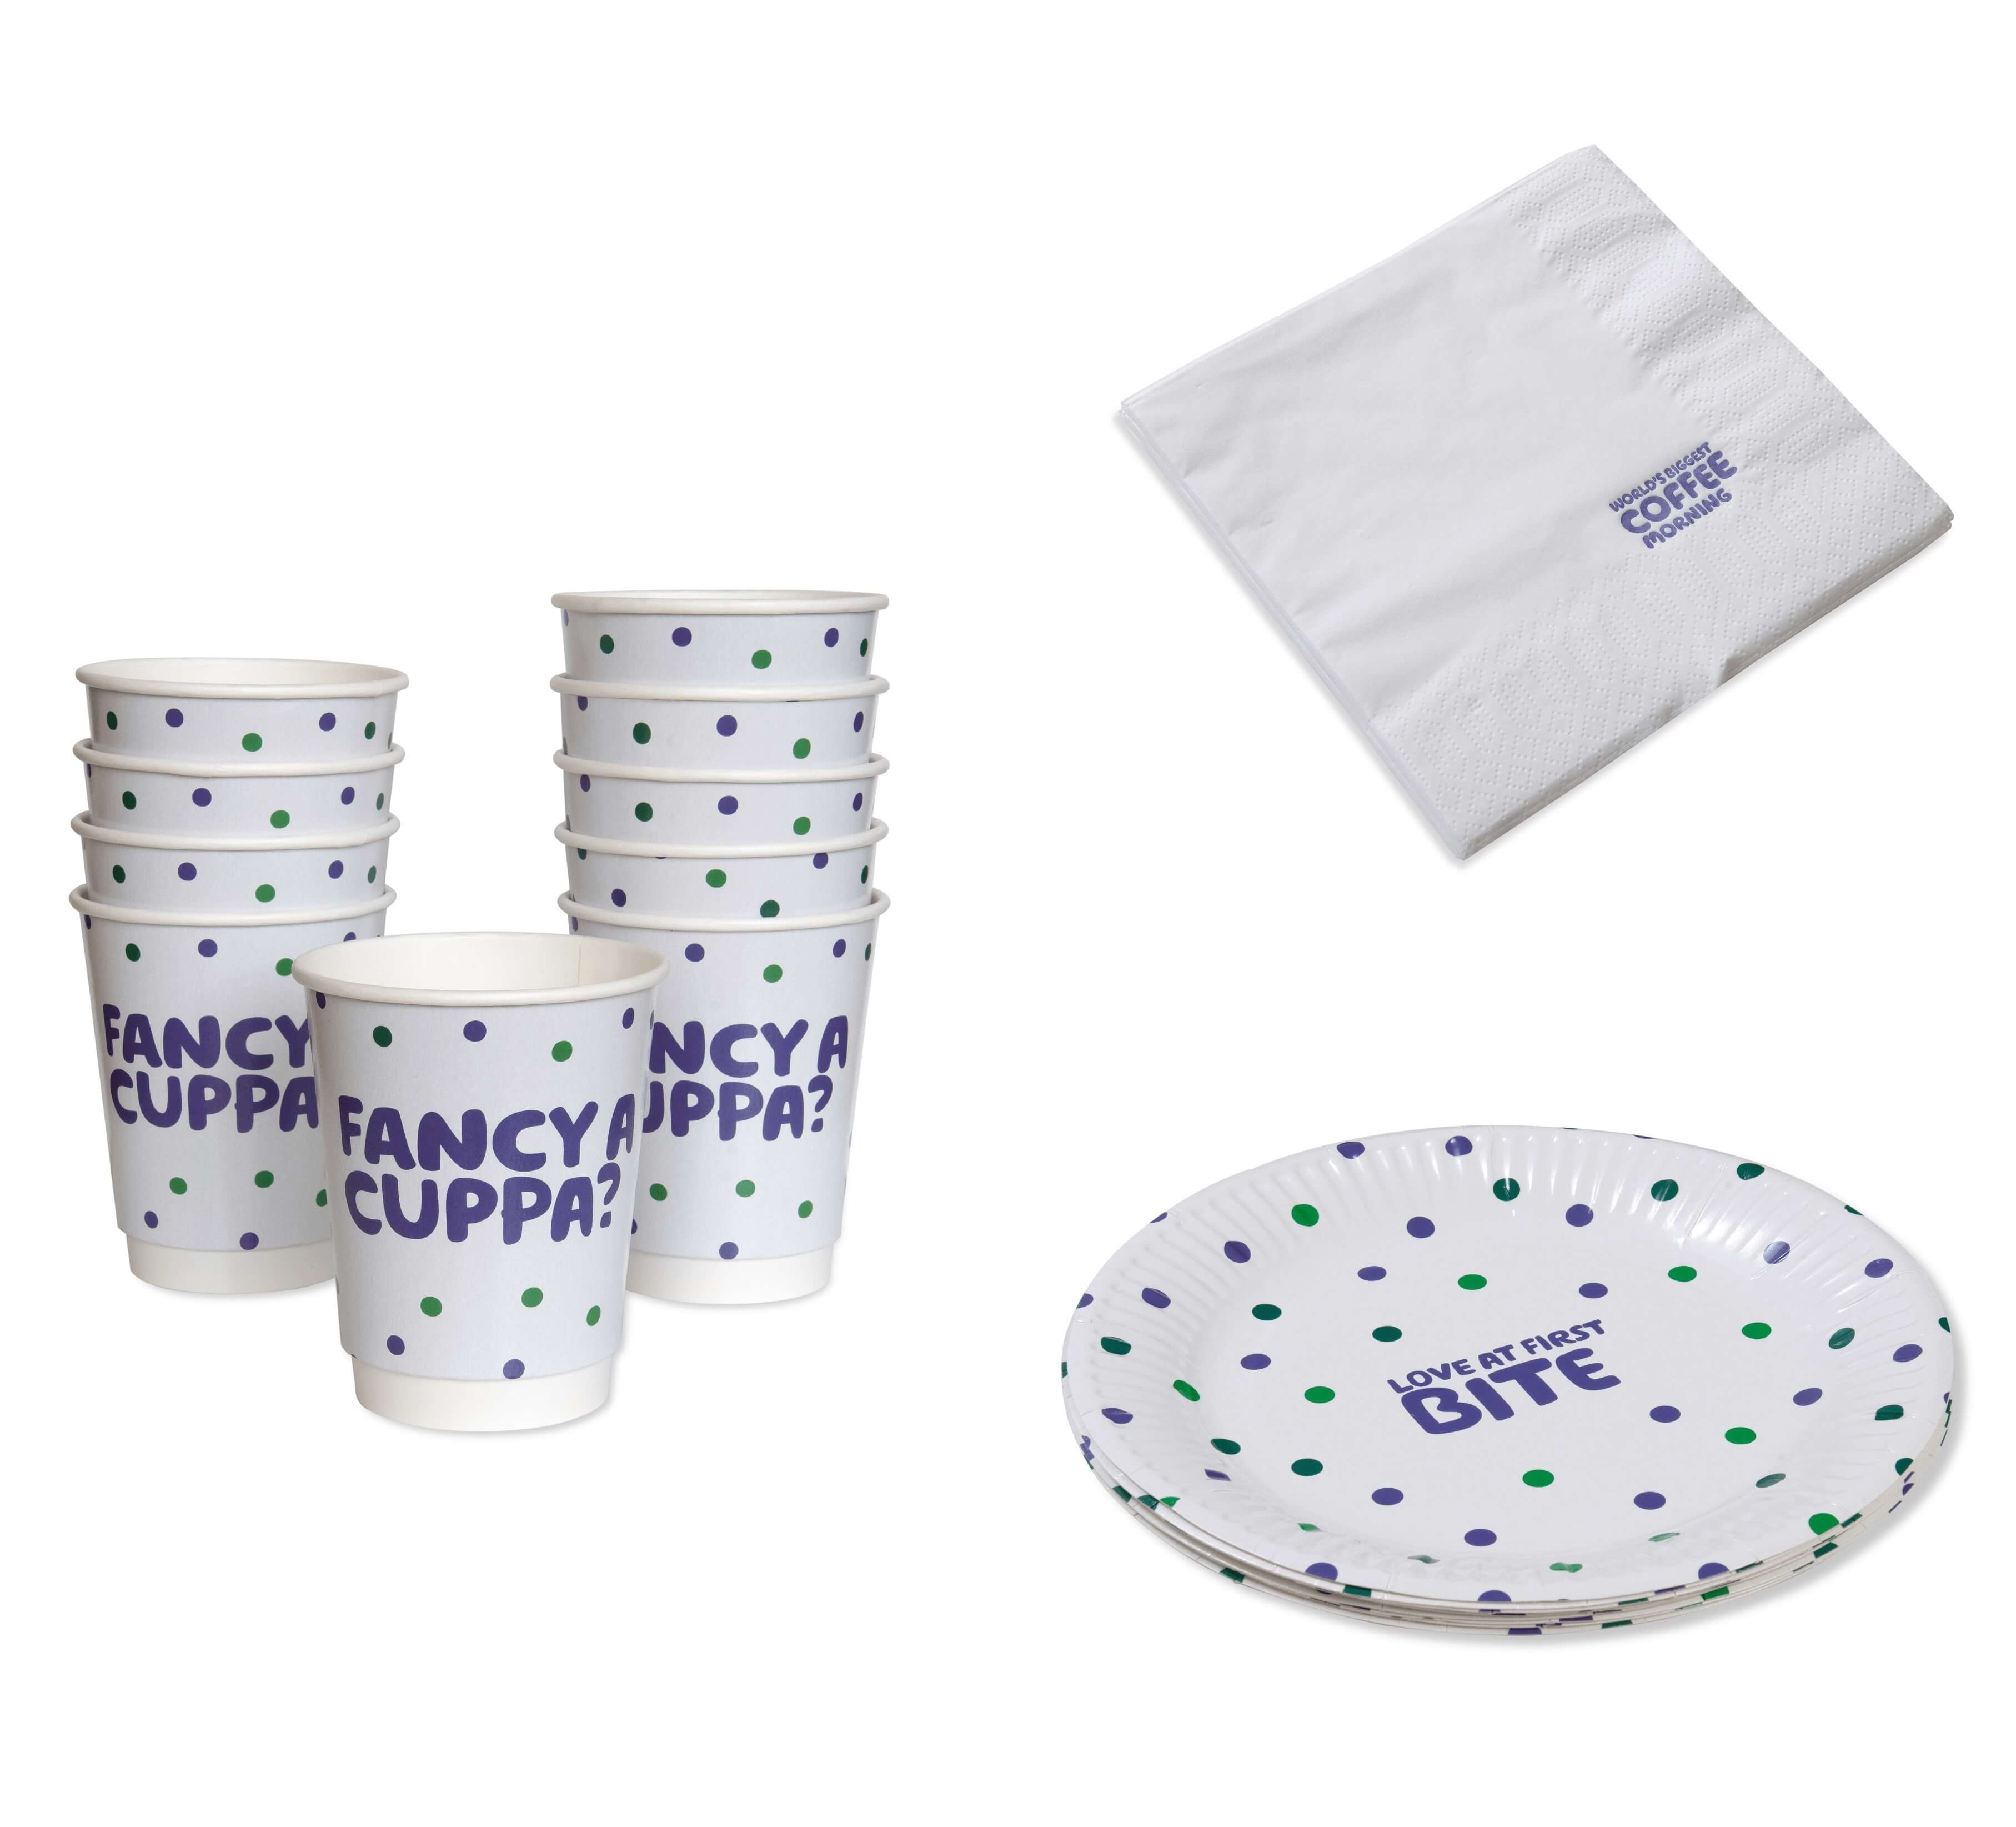 Plate, cup and napkin bundle